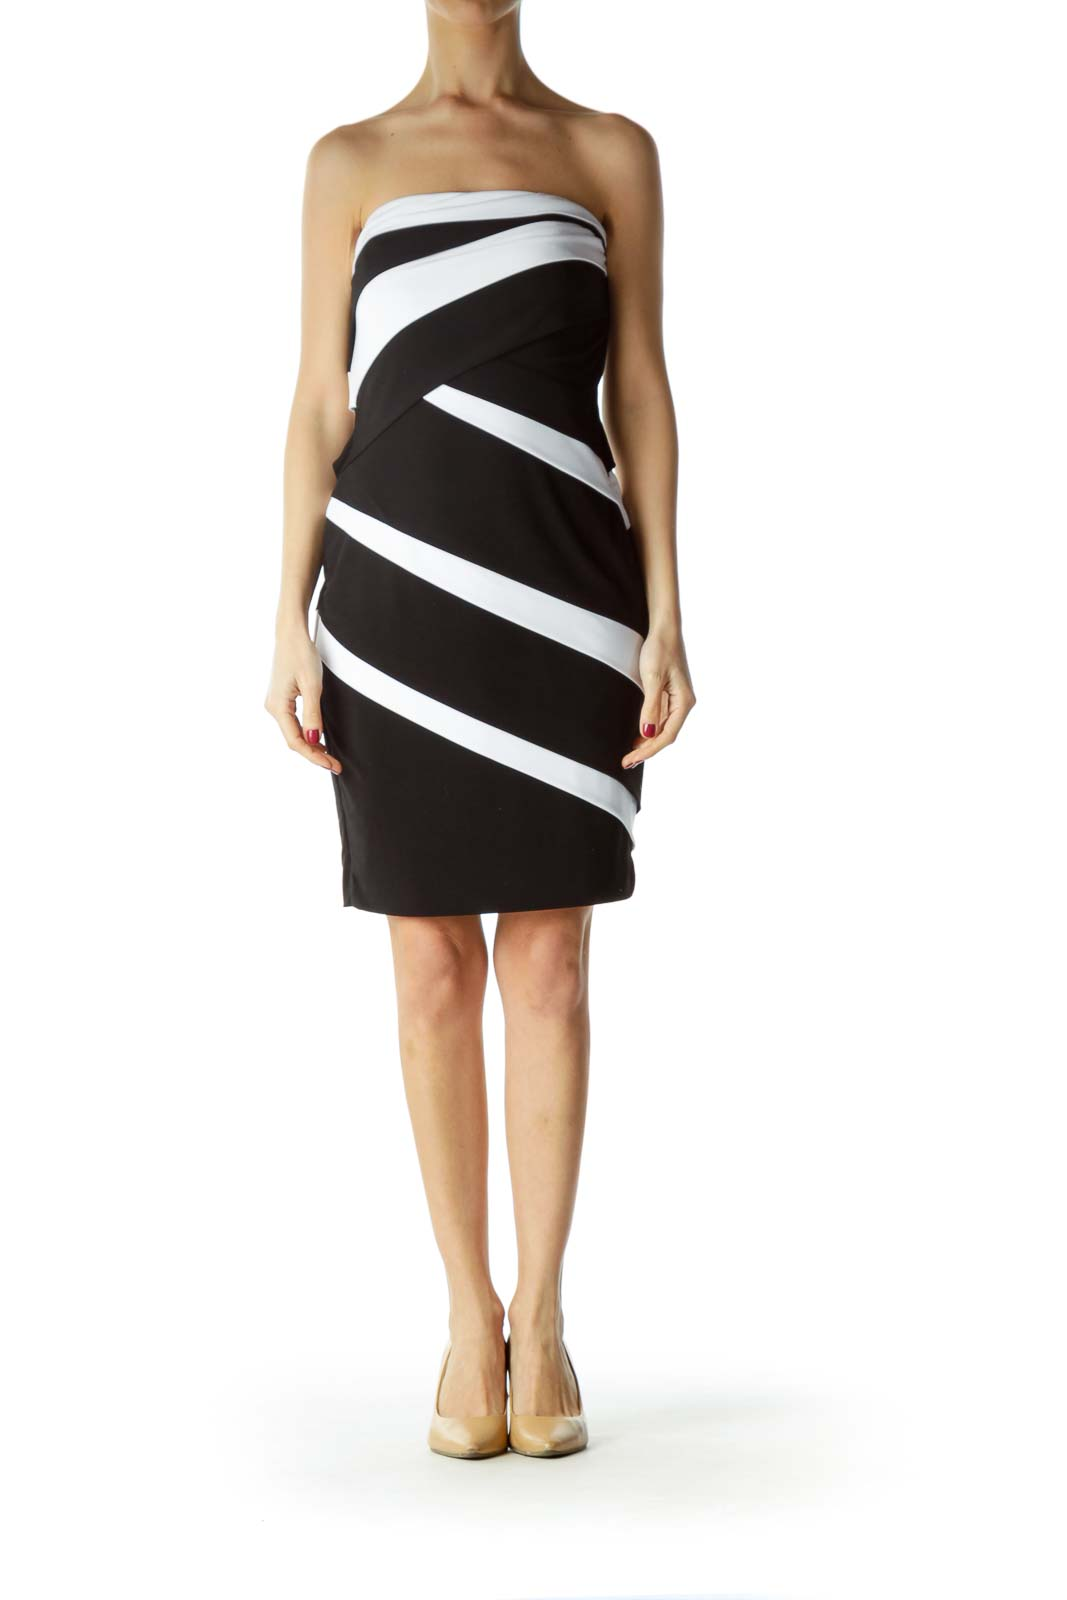 Black White Strapless Slim Cocktail Dress